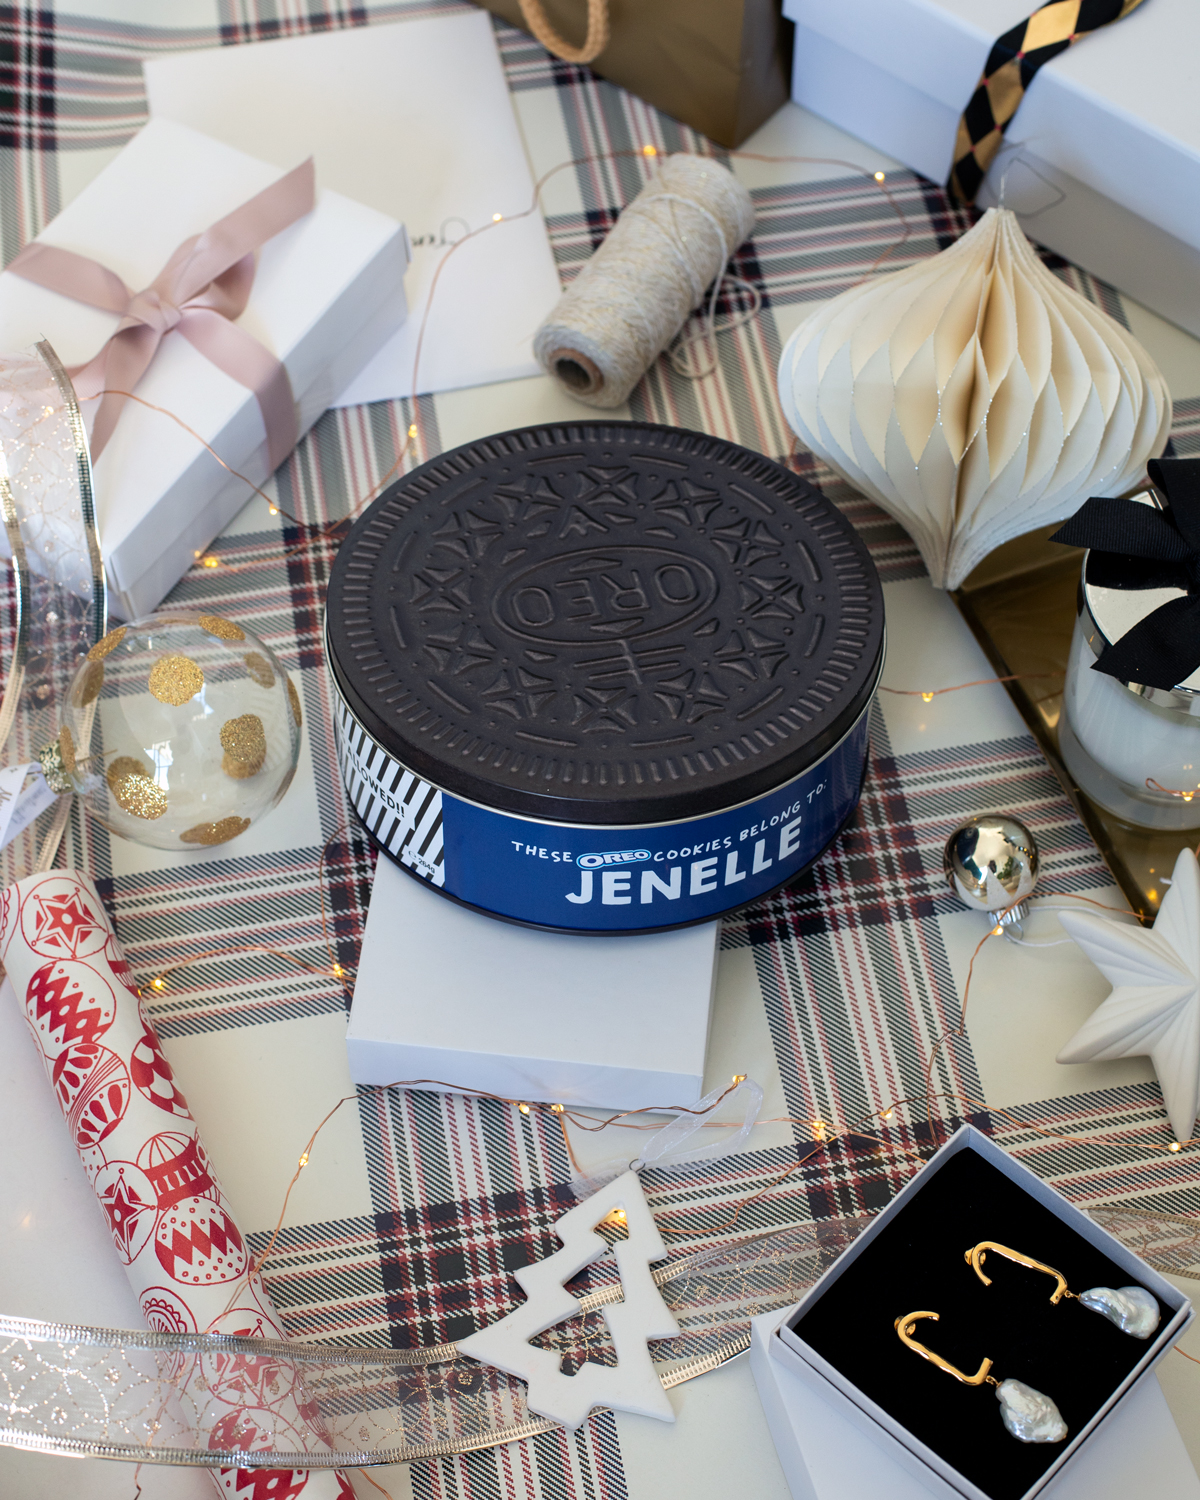 2018 Christmas gift guide Inspiring Wit blog featuring kids gifts personalised Oreo cookie tin from Cotton On Kids